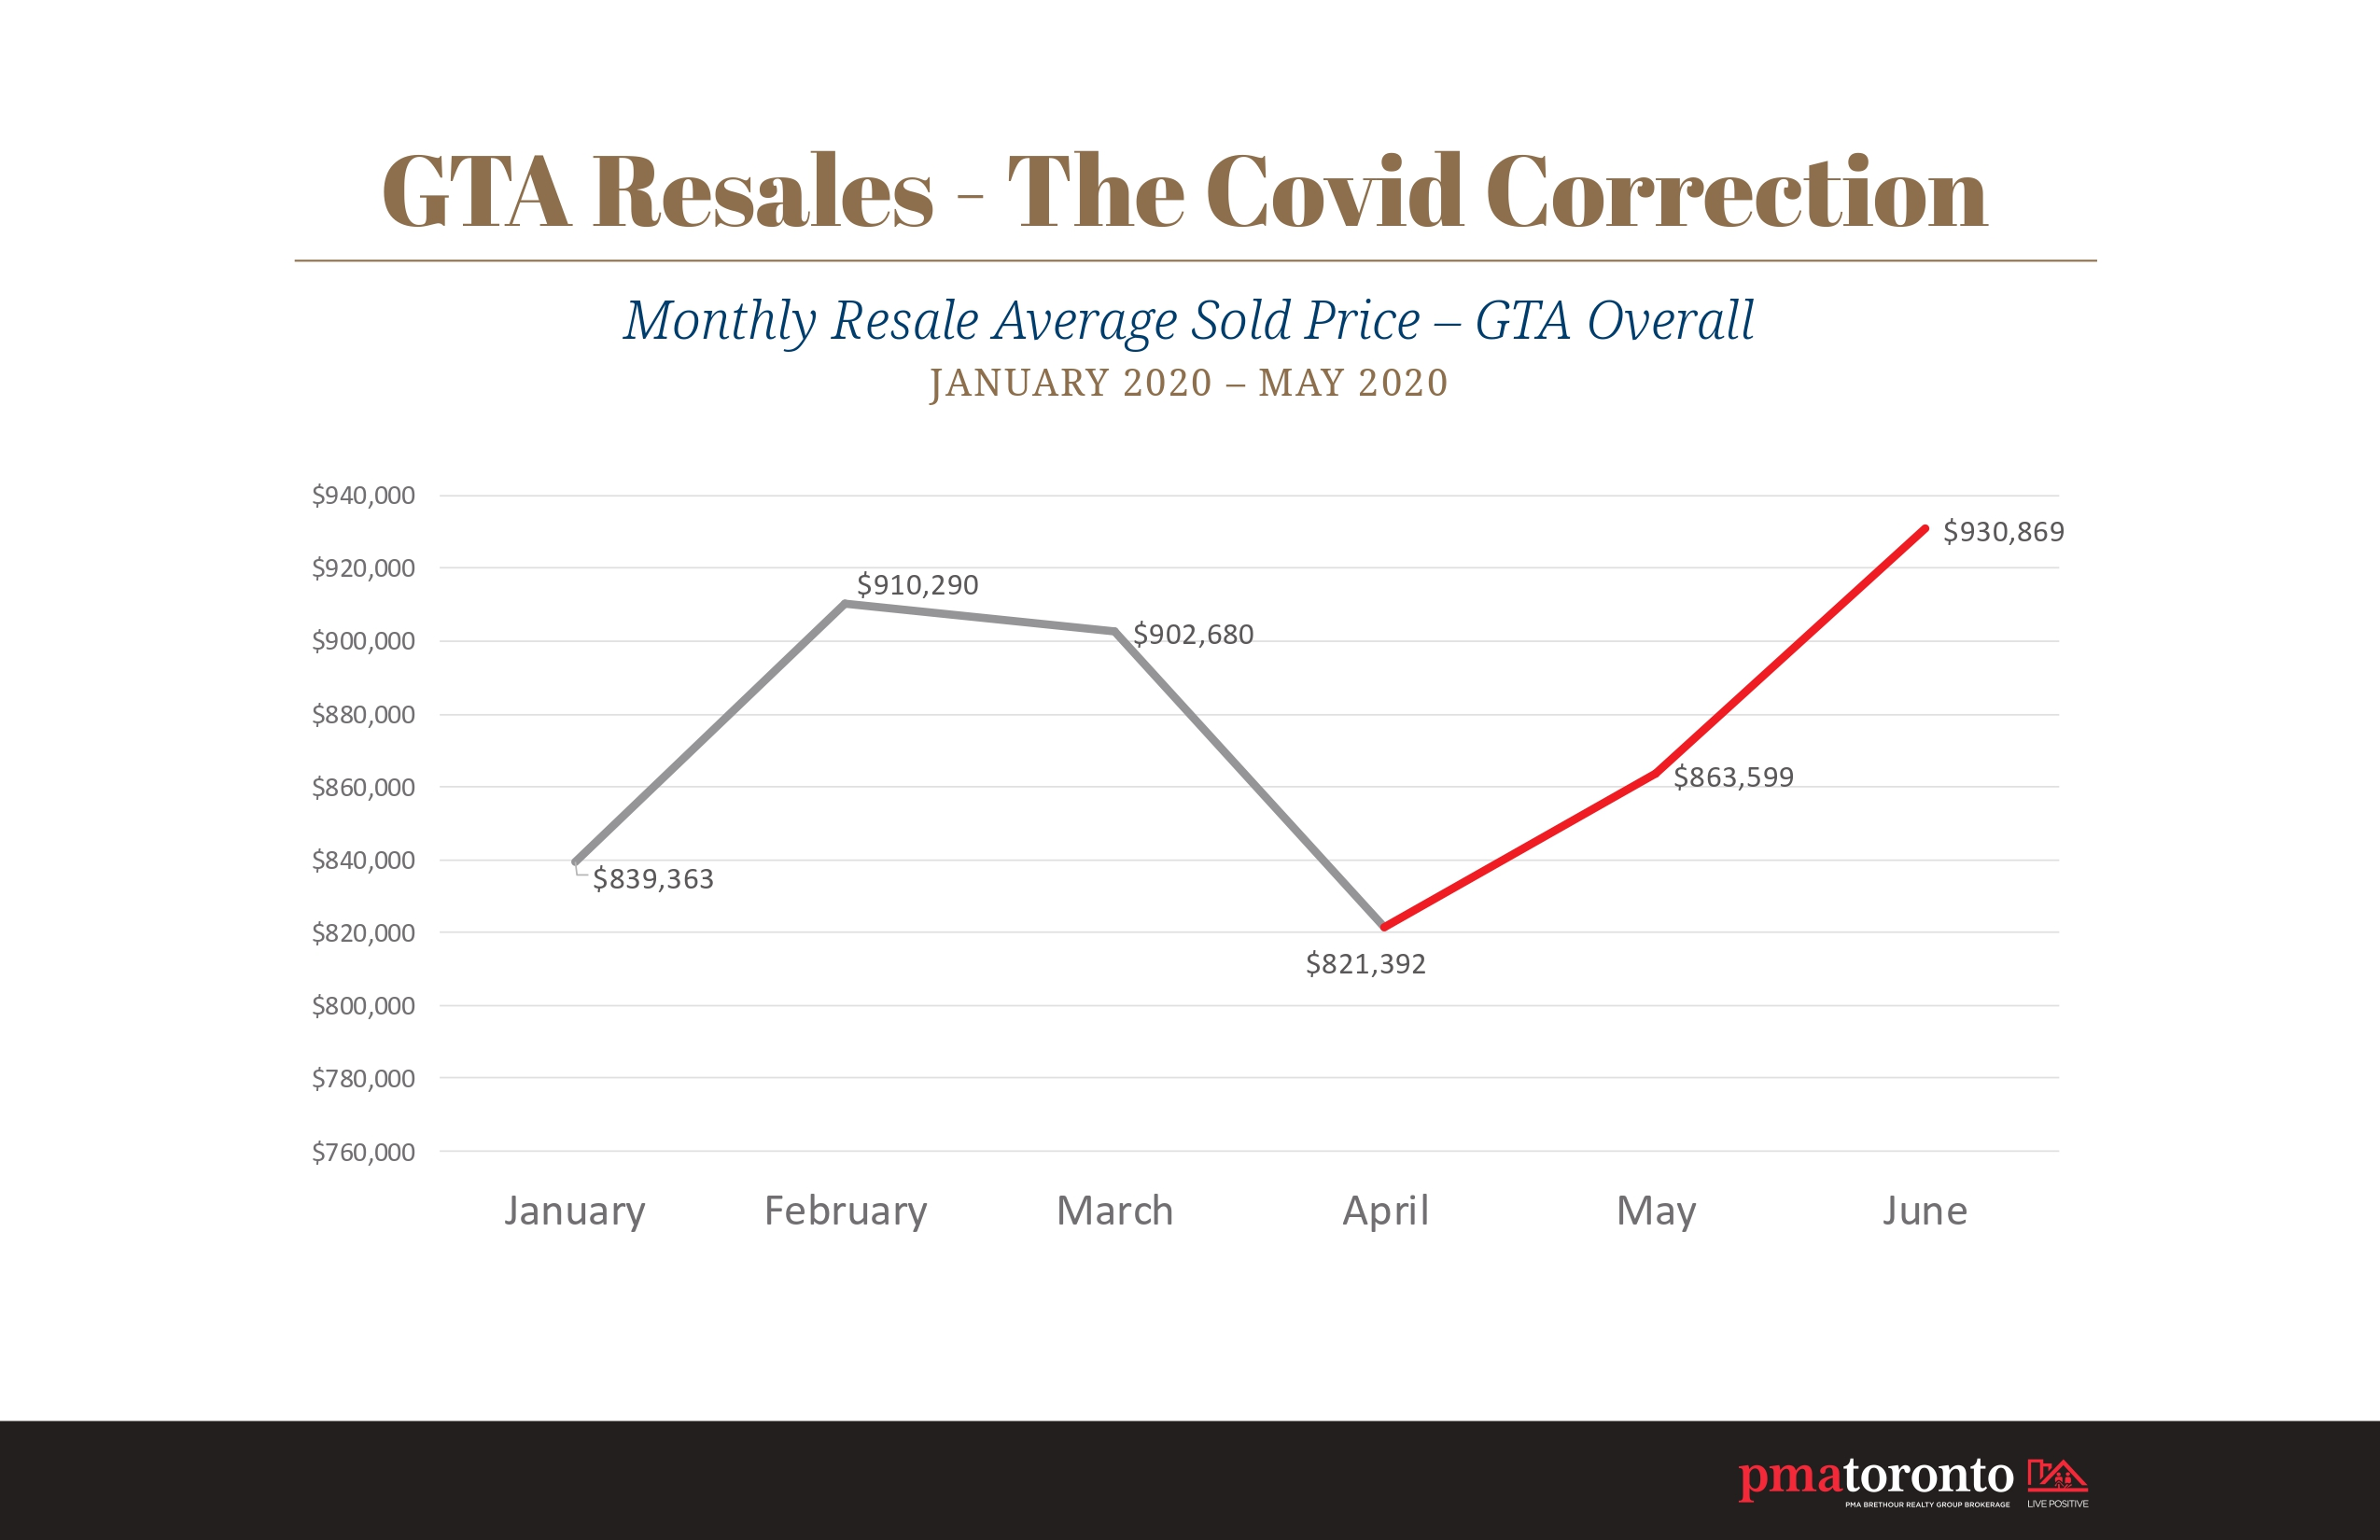 Infographic - Monthly Resale Average Price Sold In GTA - January to June 2020